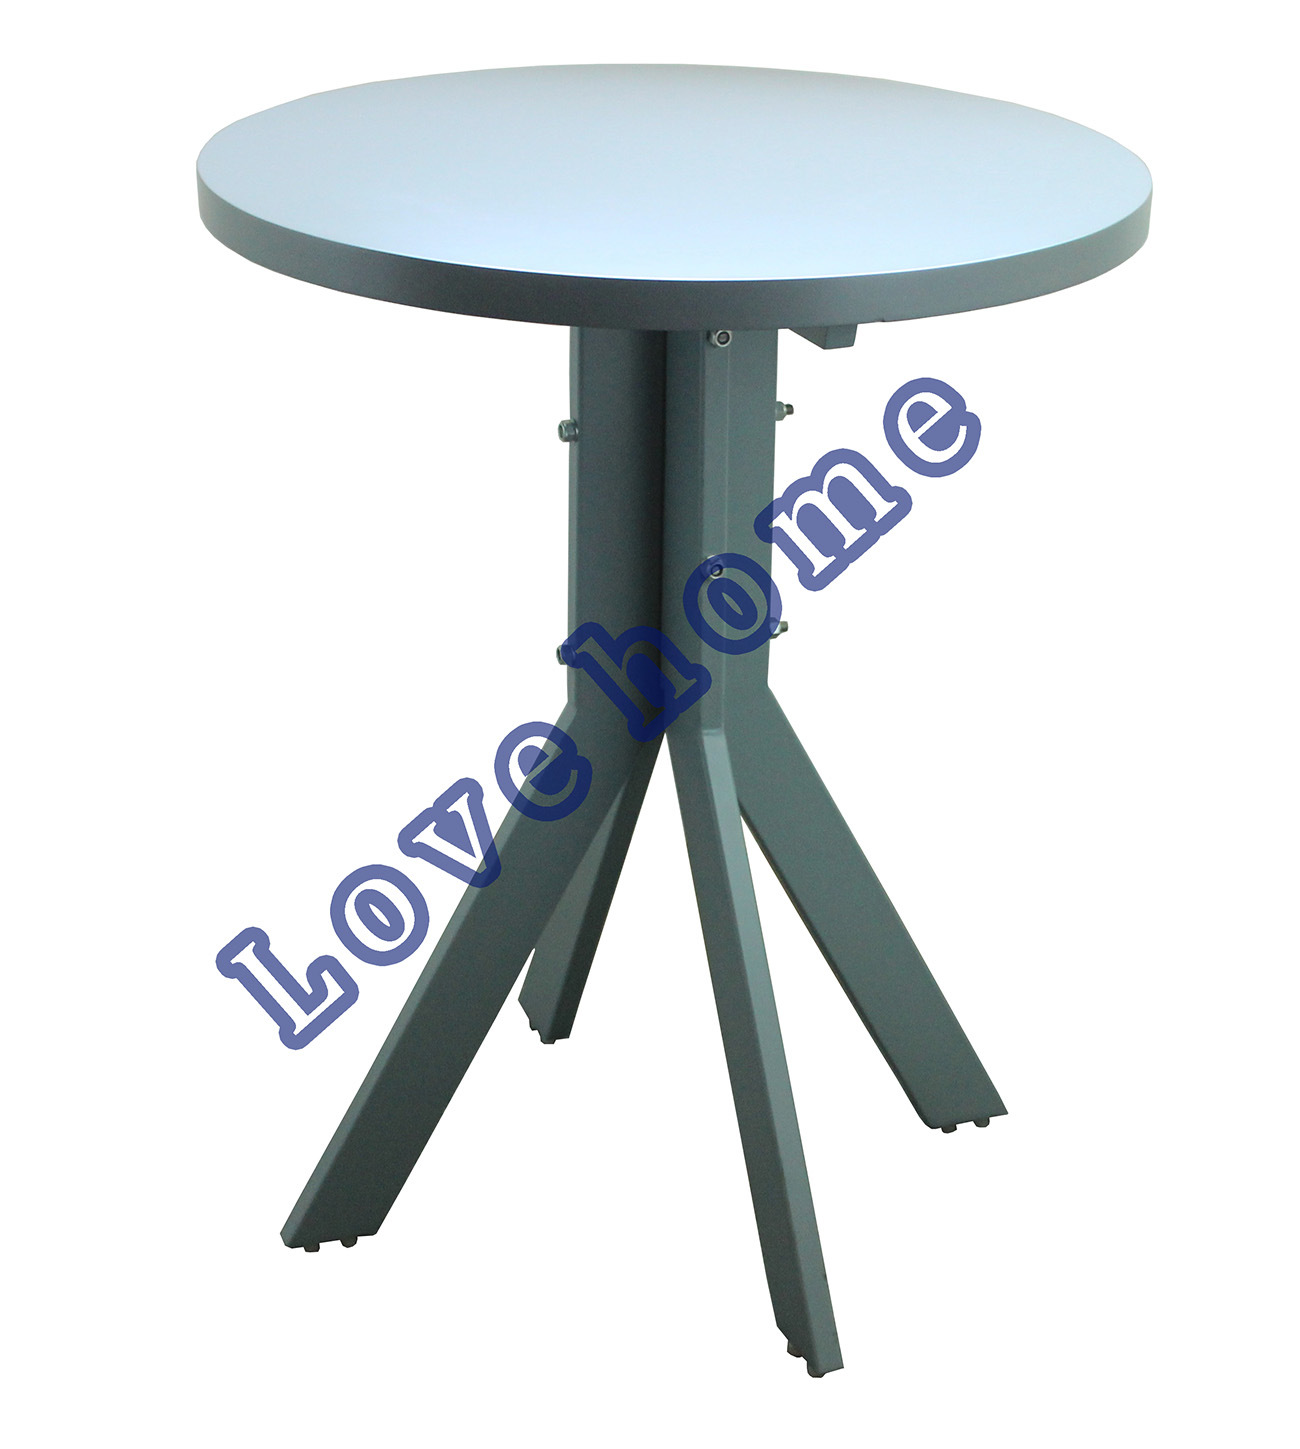 Modern Dining Restaurant Metal Leg Wooden Table